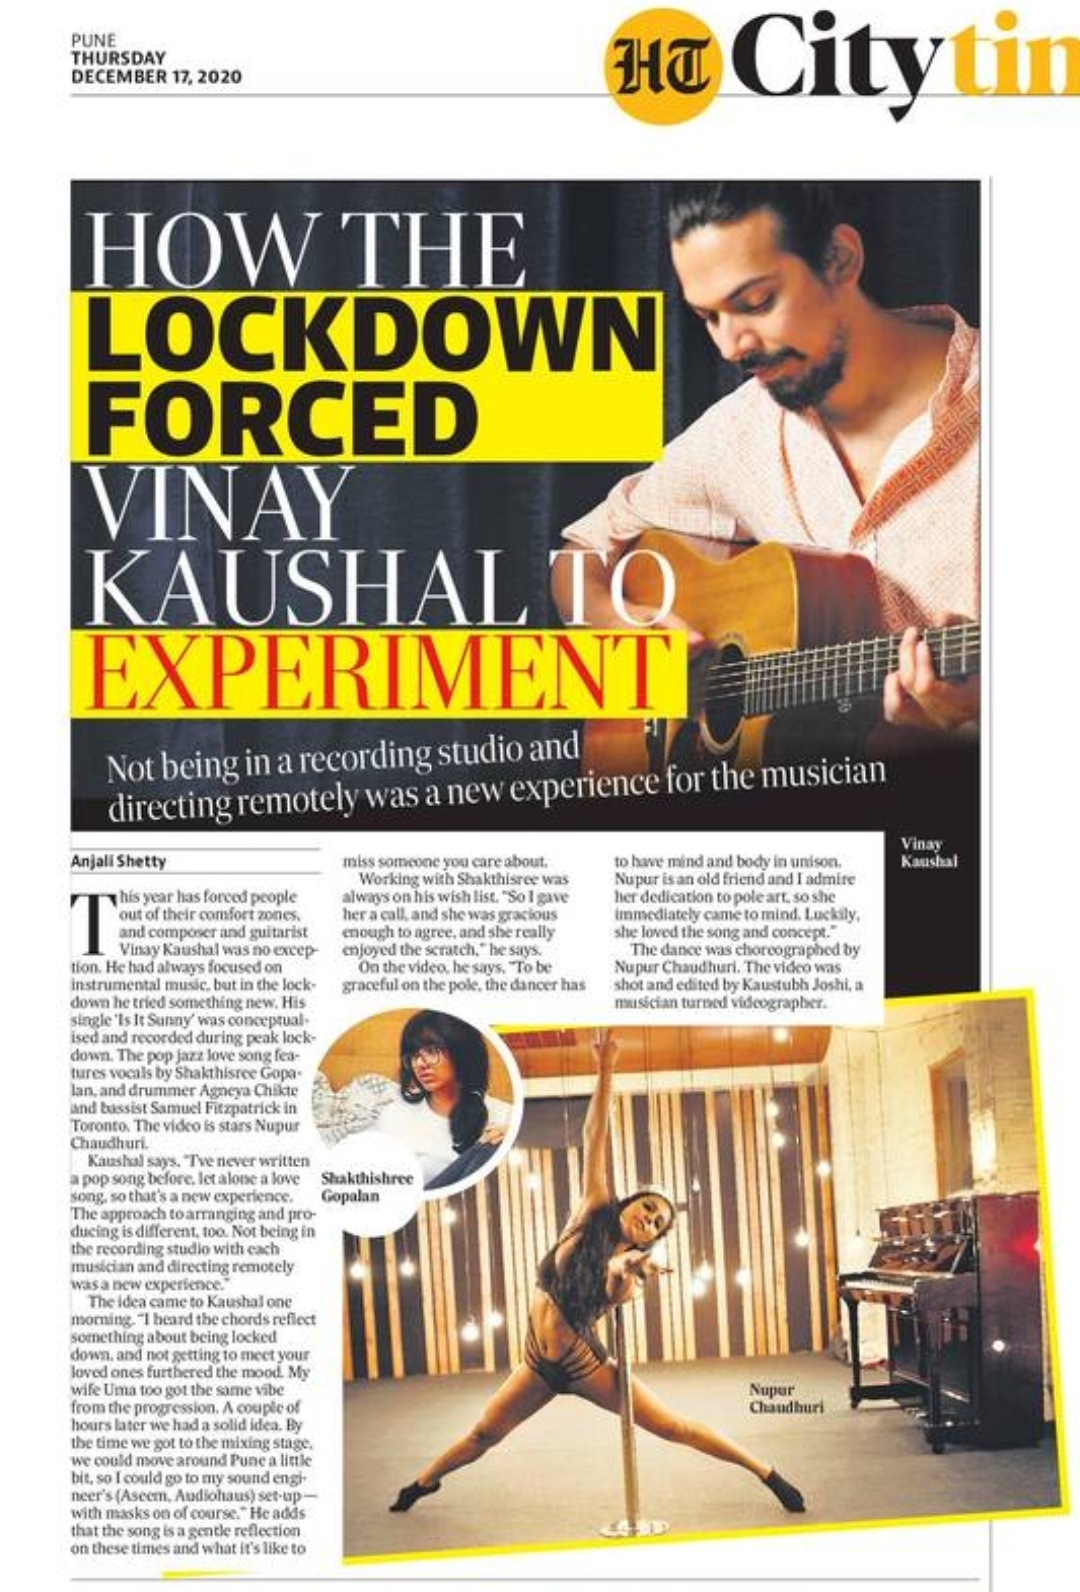 HT Cafe 17th Dec 2020